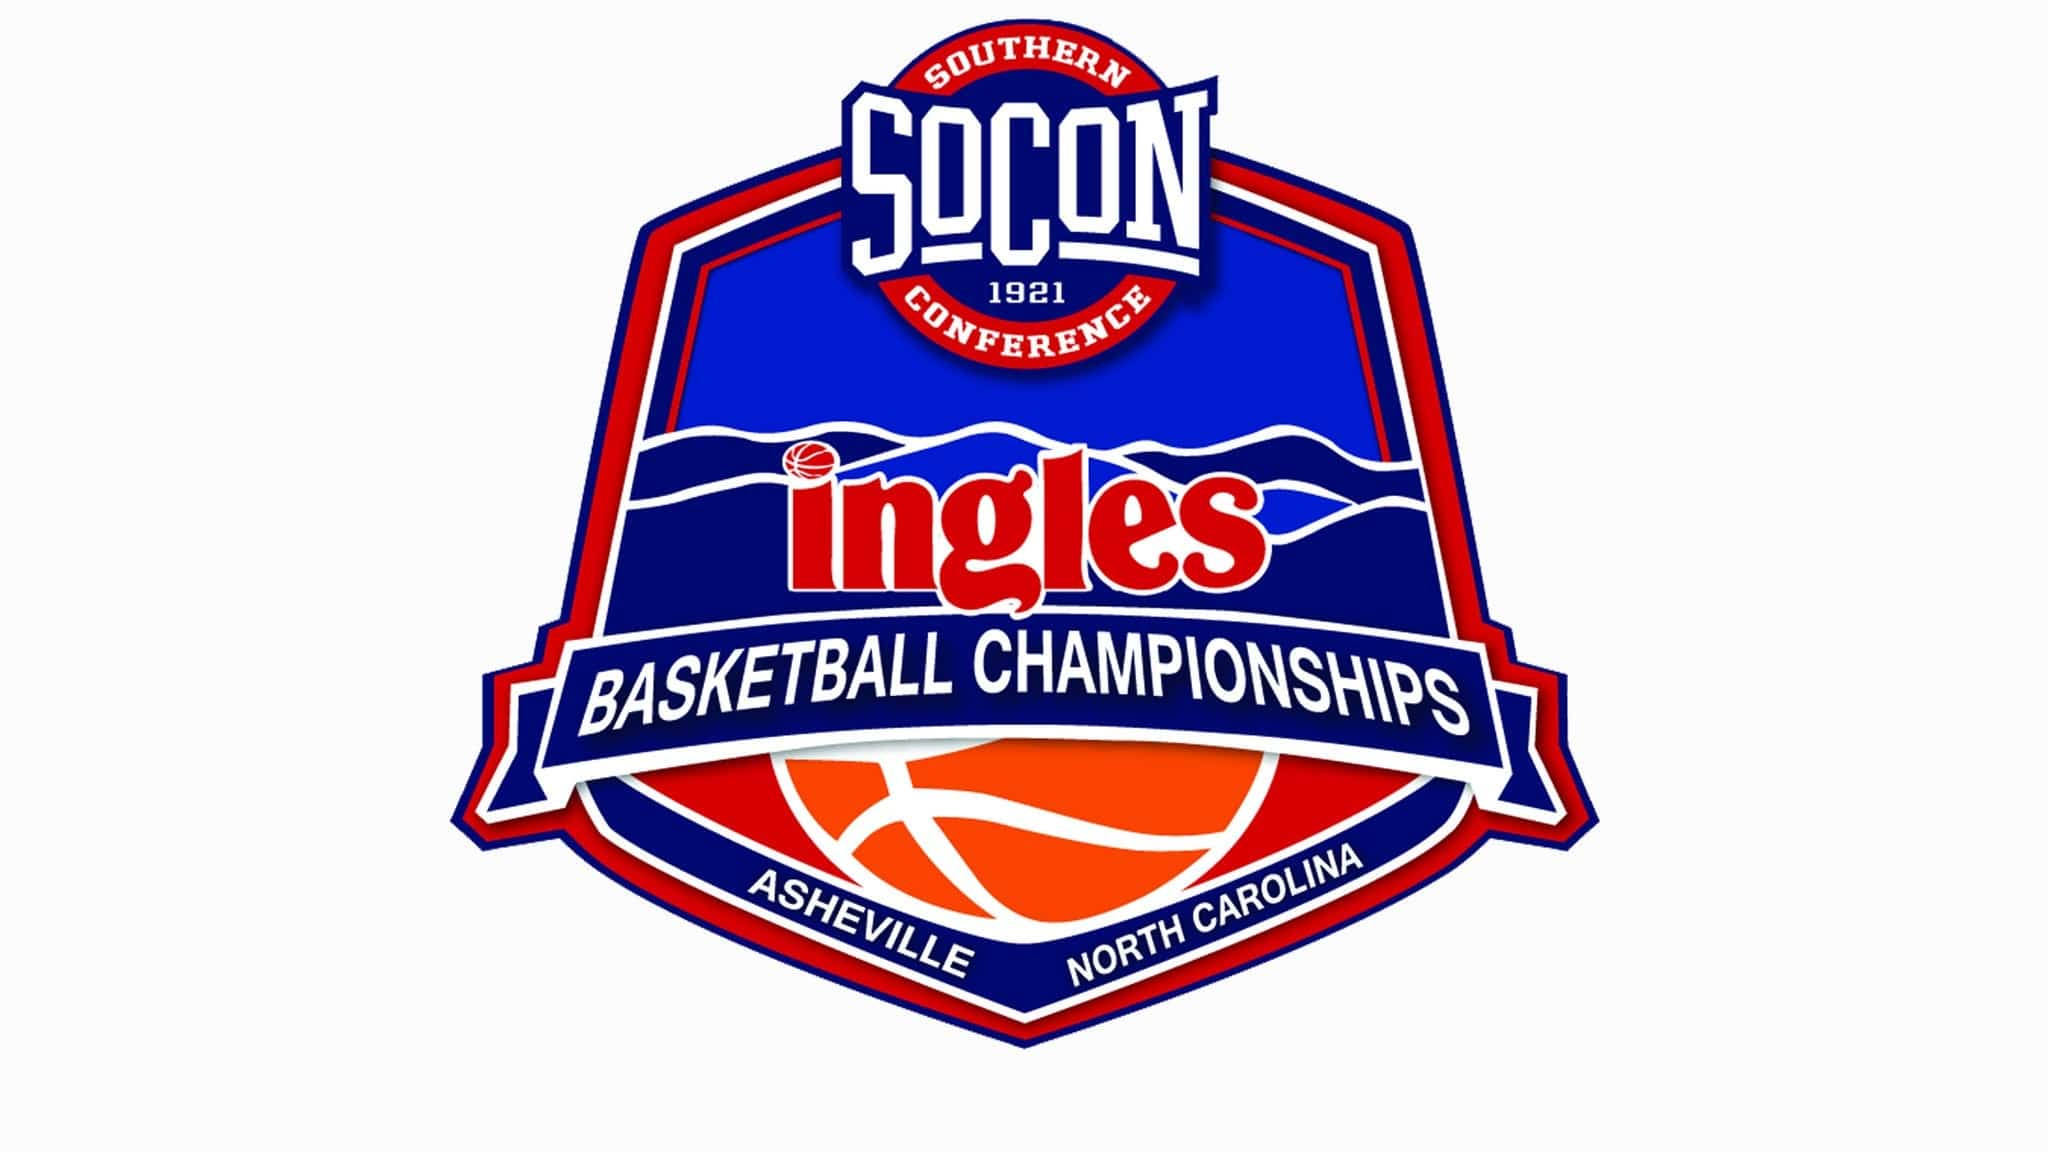 2020 Southern Conference Tournament